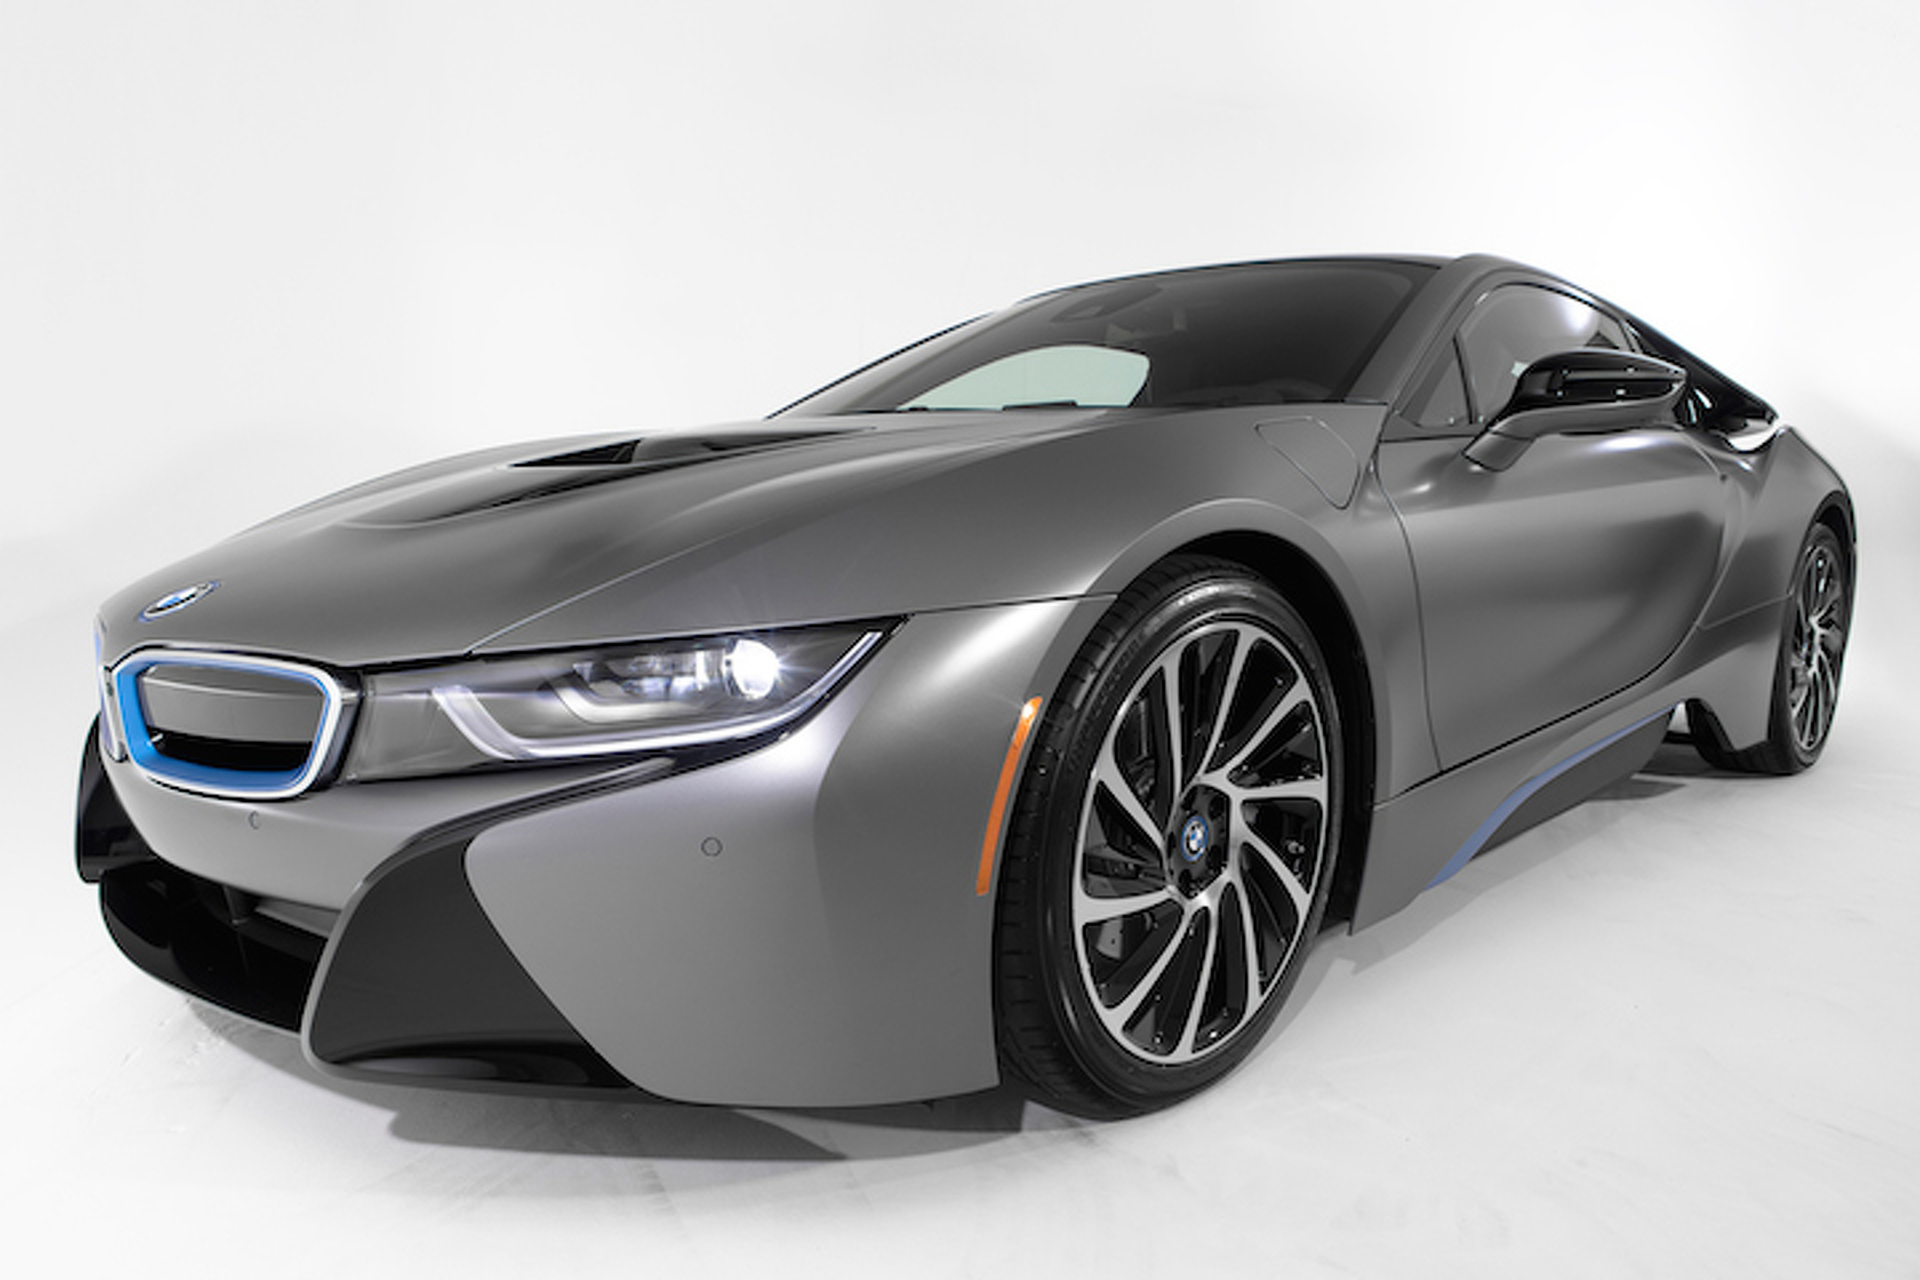 BMW i8 Auctions for an Insane $825K: Pebble Beach